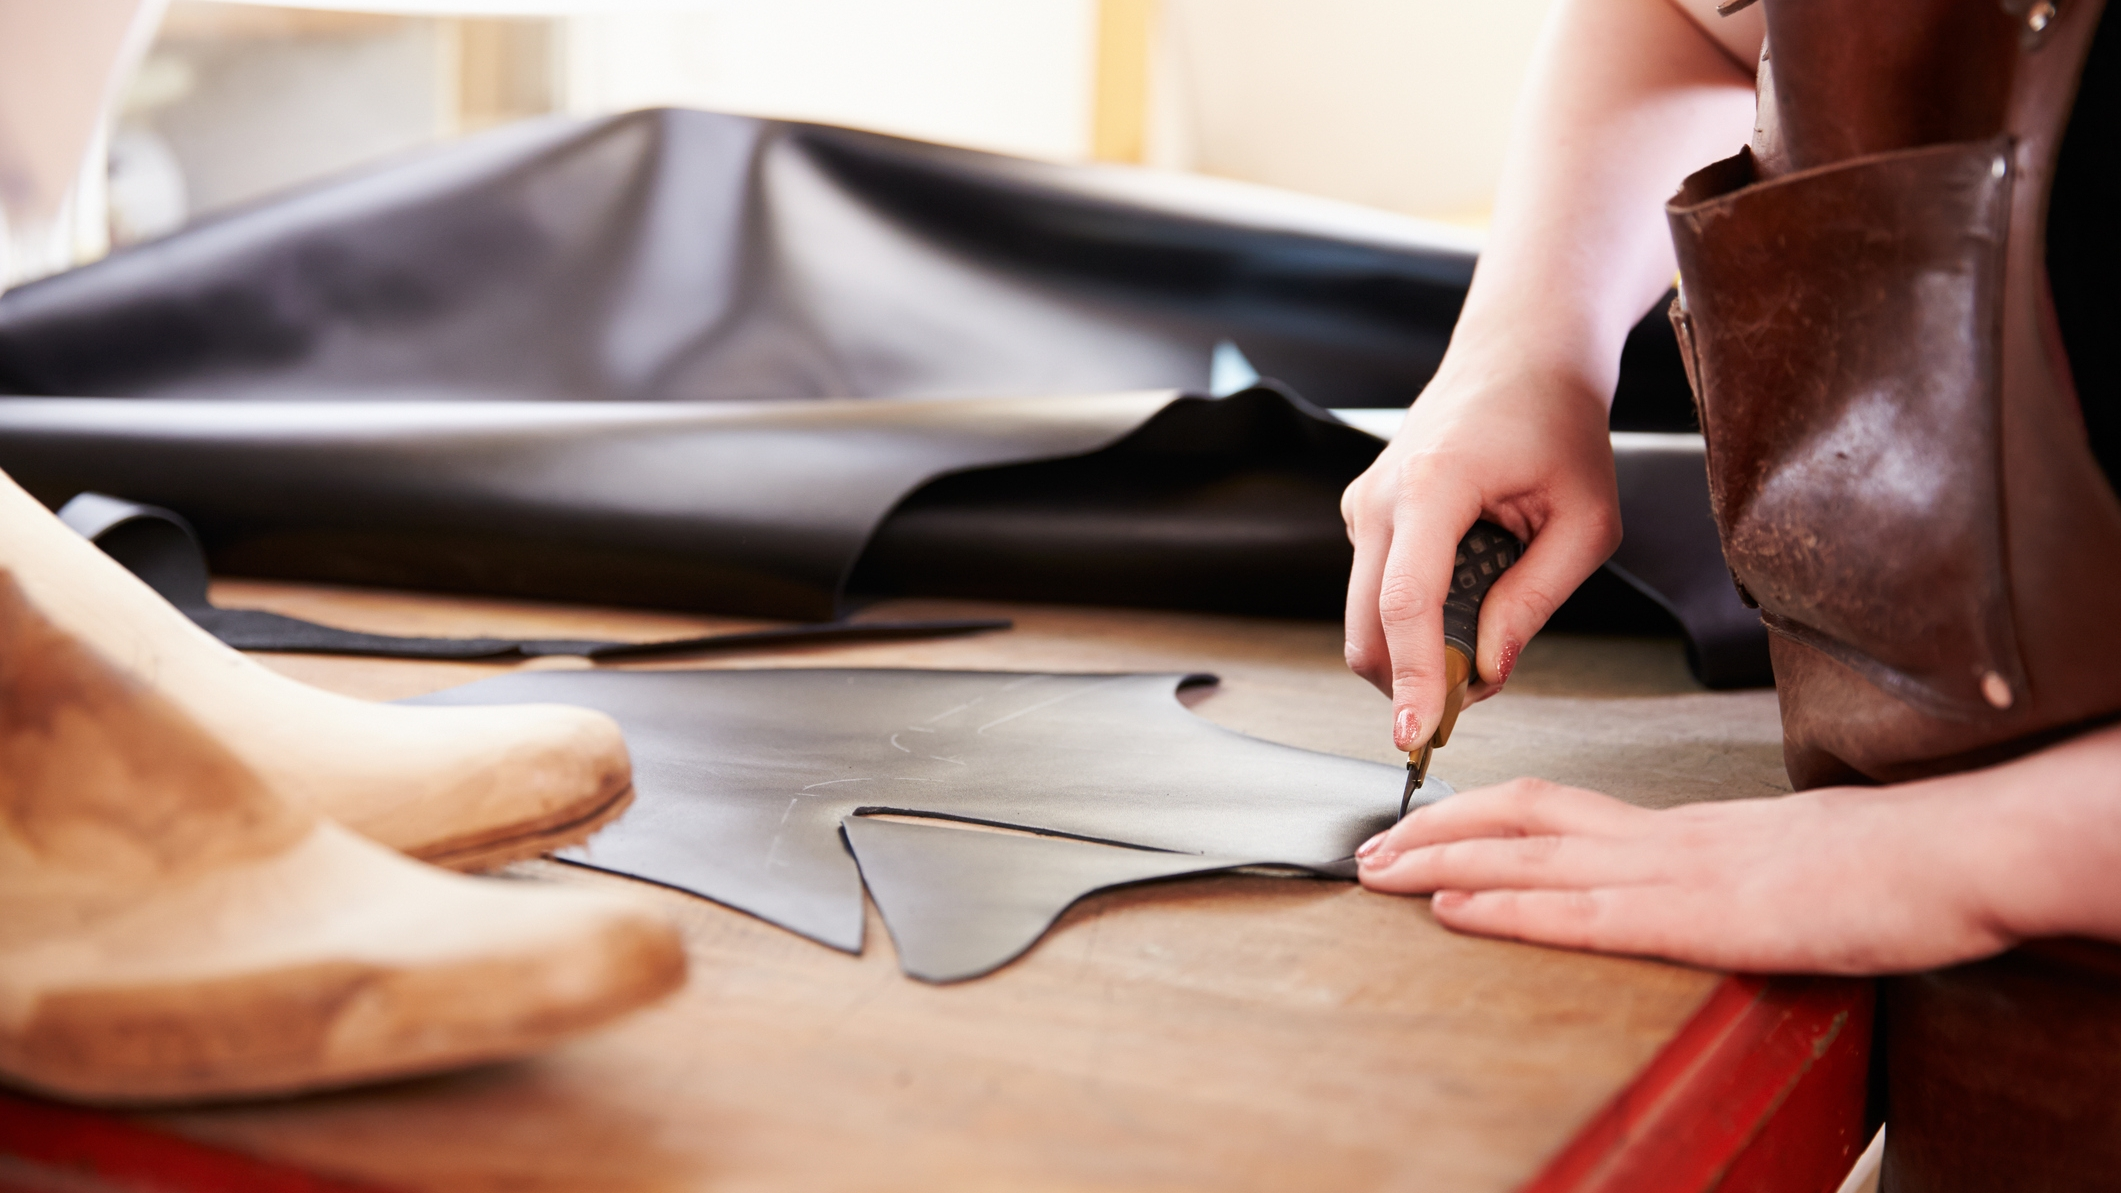 Cutting - The skillful hands of the shoe craftsman make the cutting with high precision.